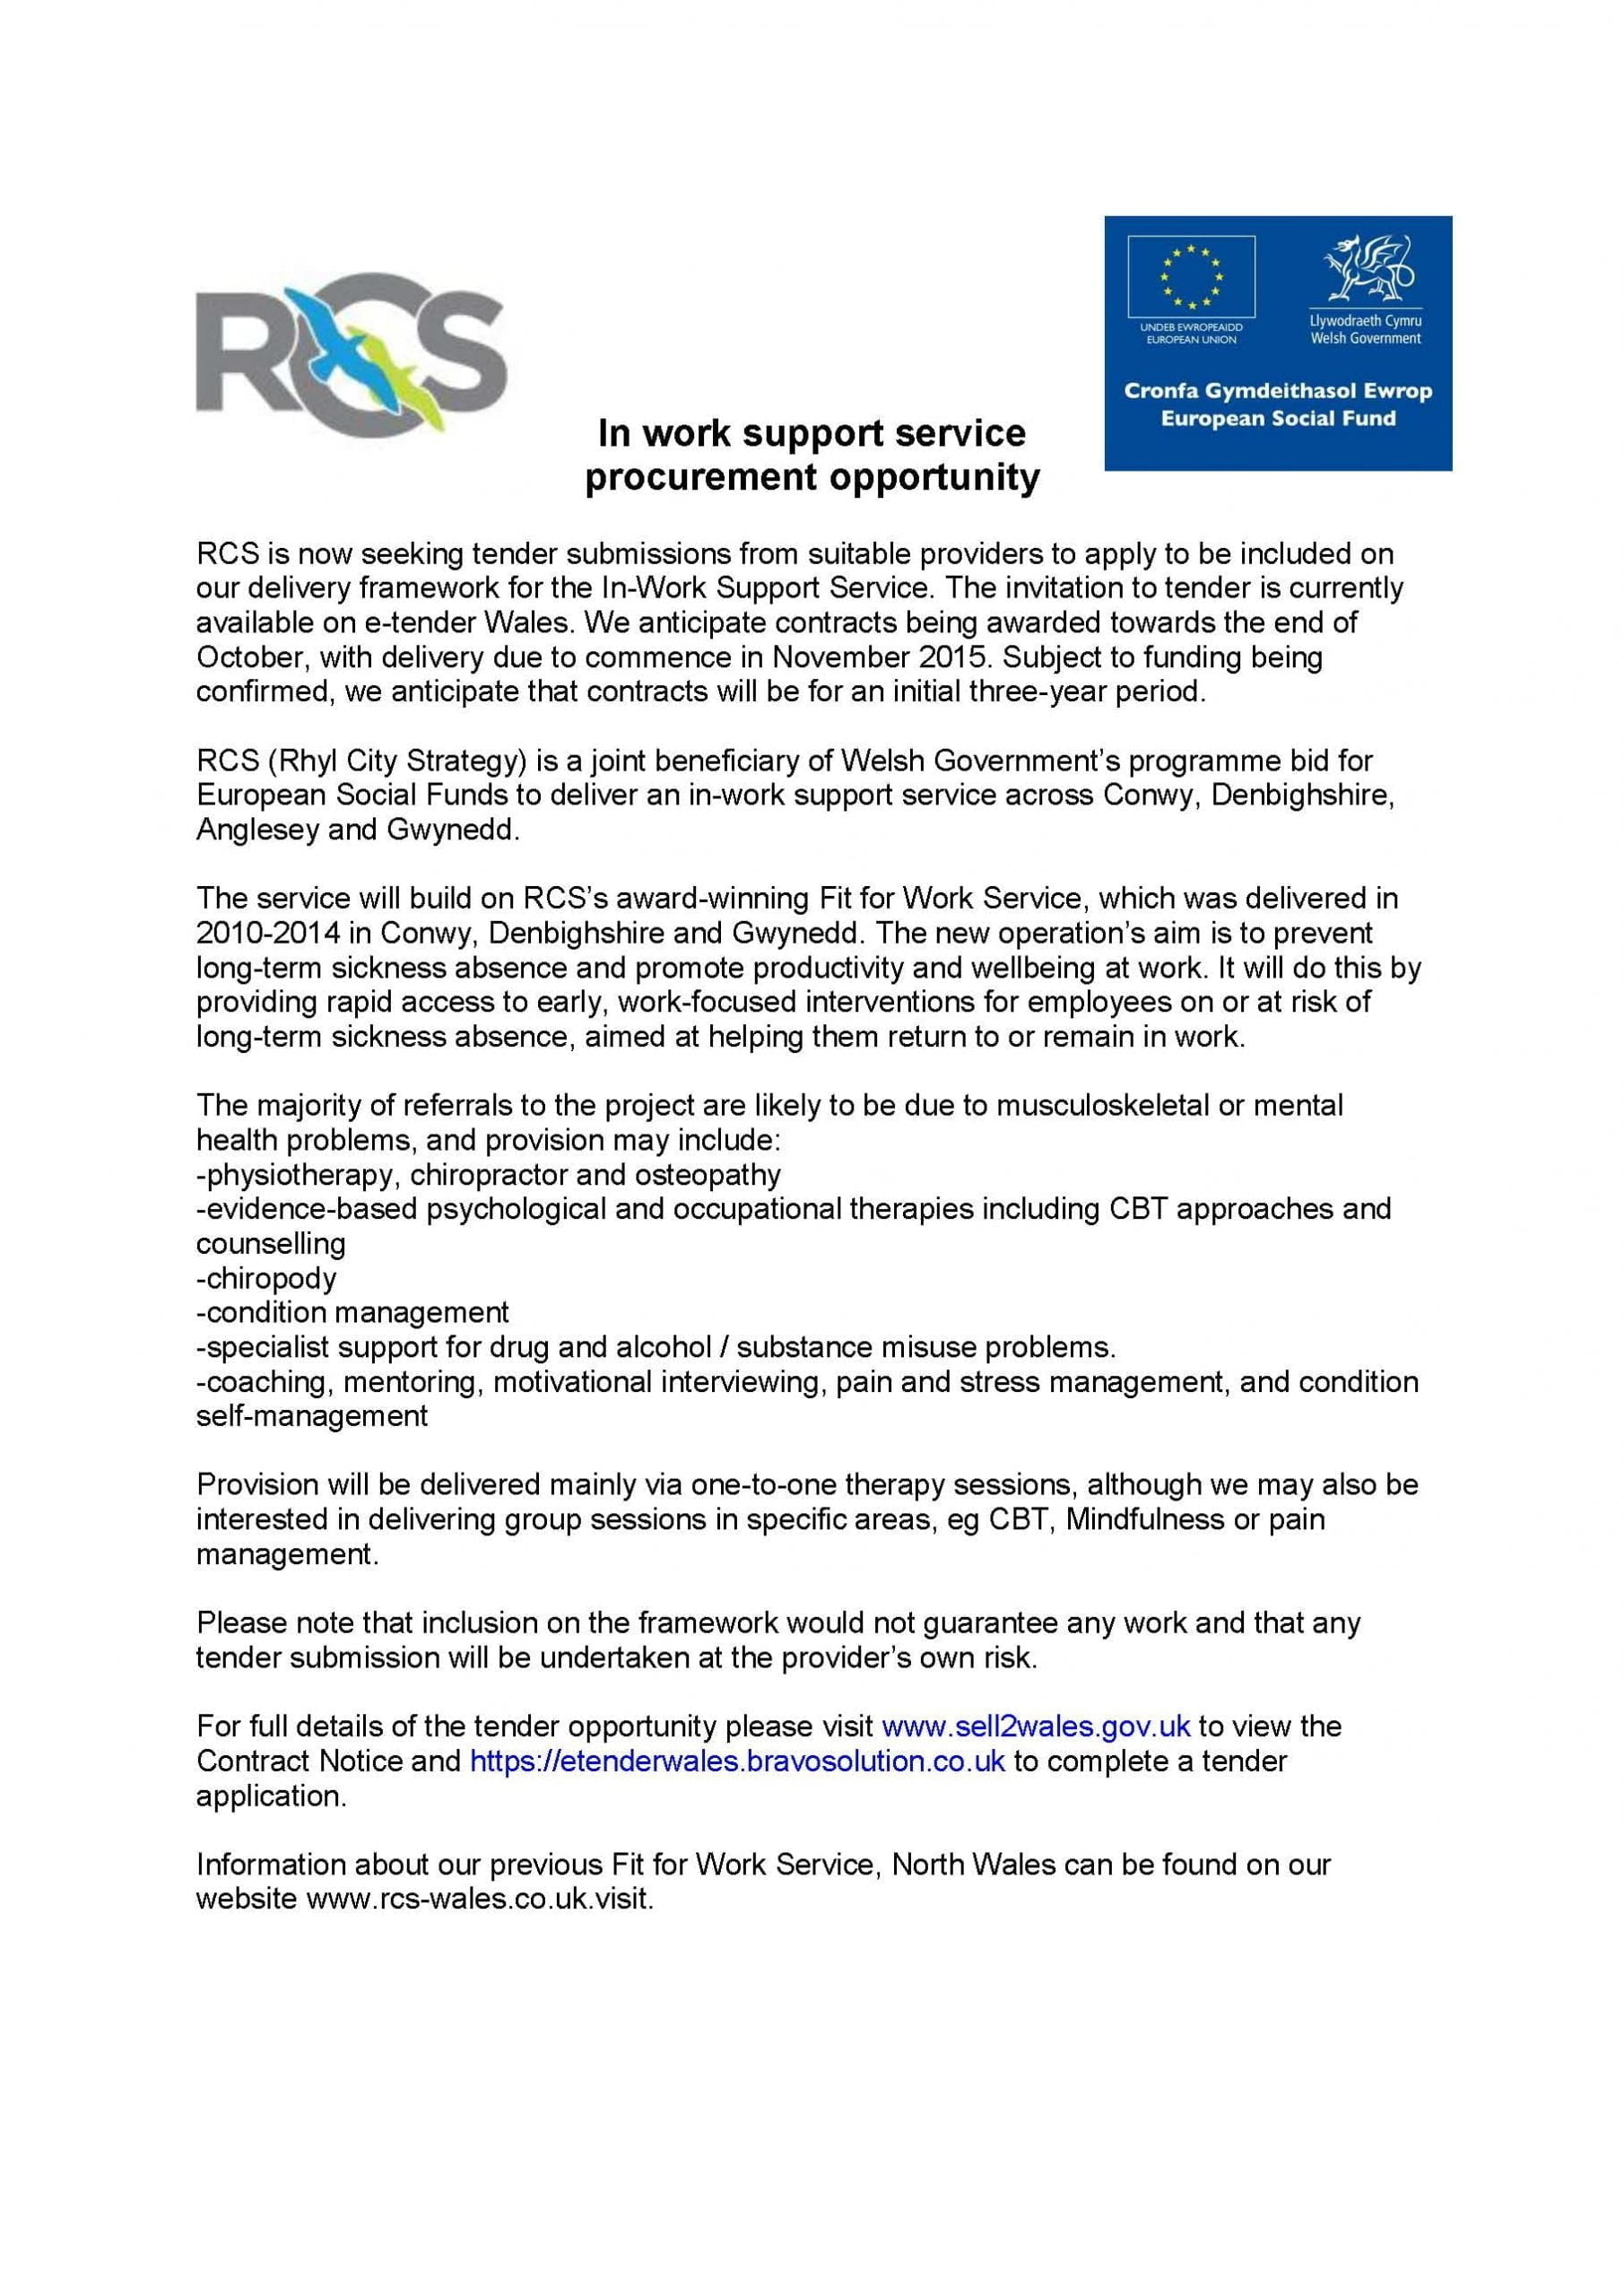 In work support service procurement opportunity notice